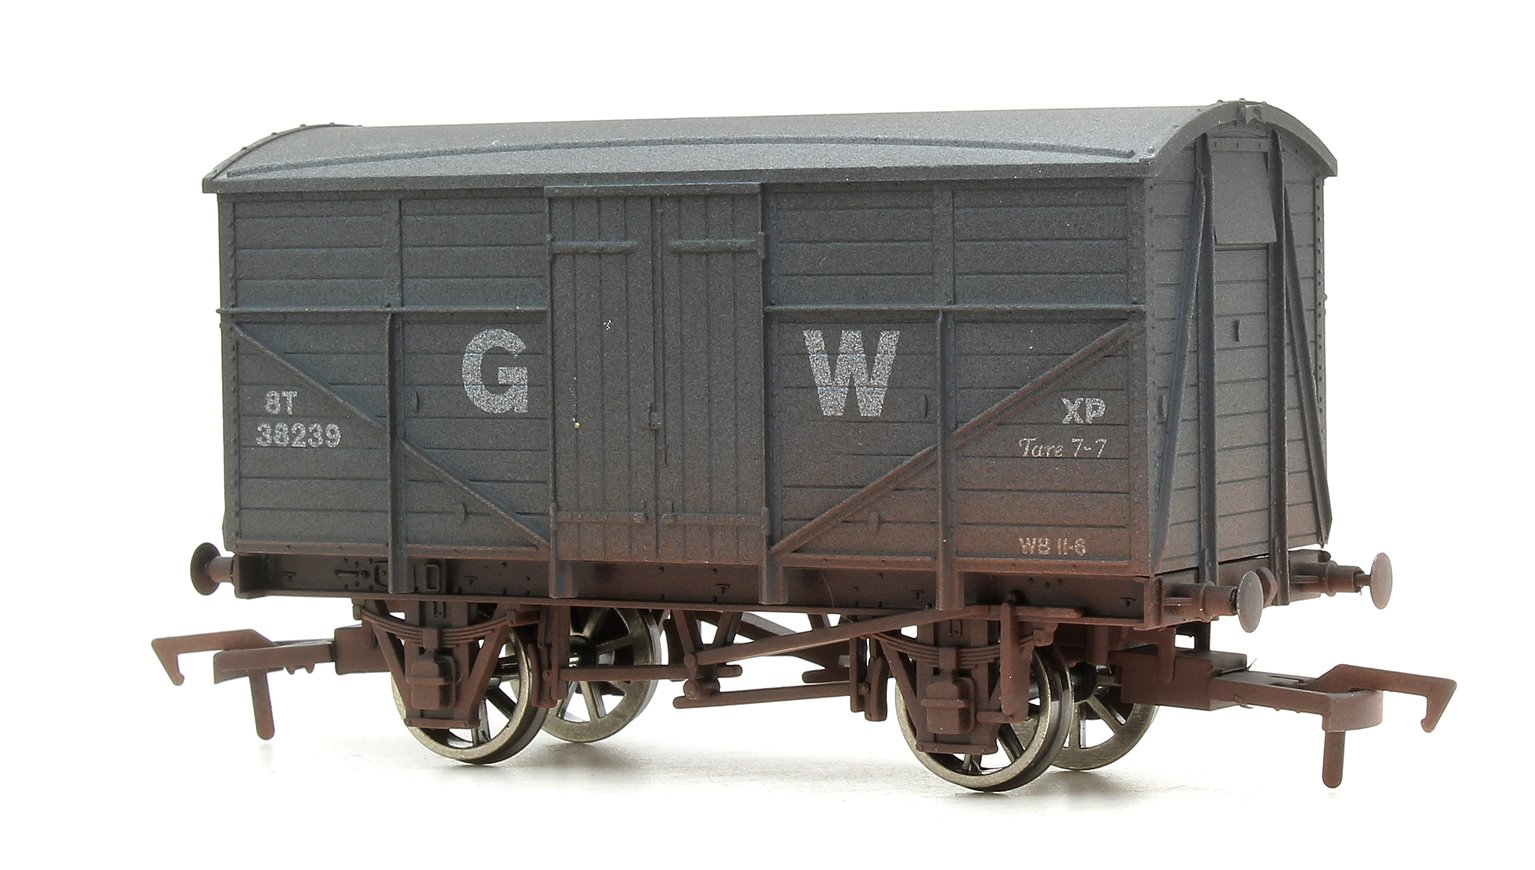 Fruit Mex GWR 38239 Weathered